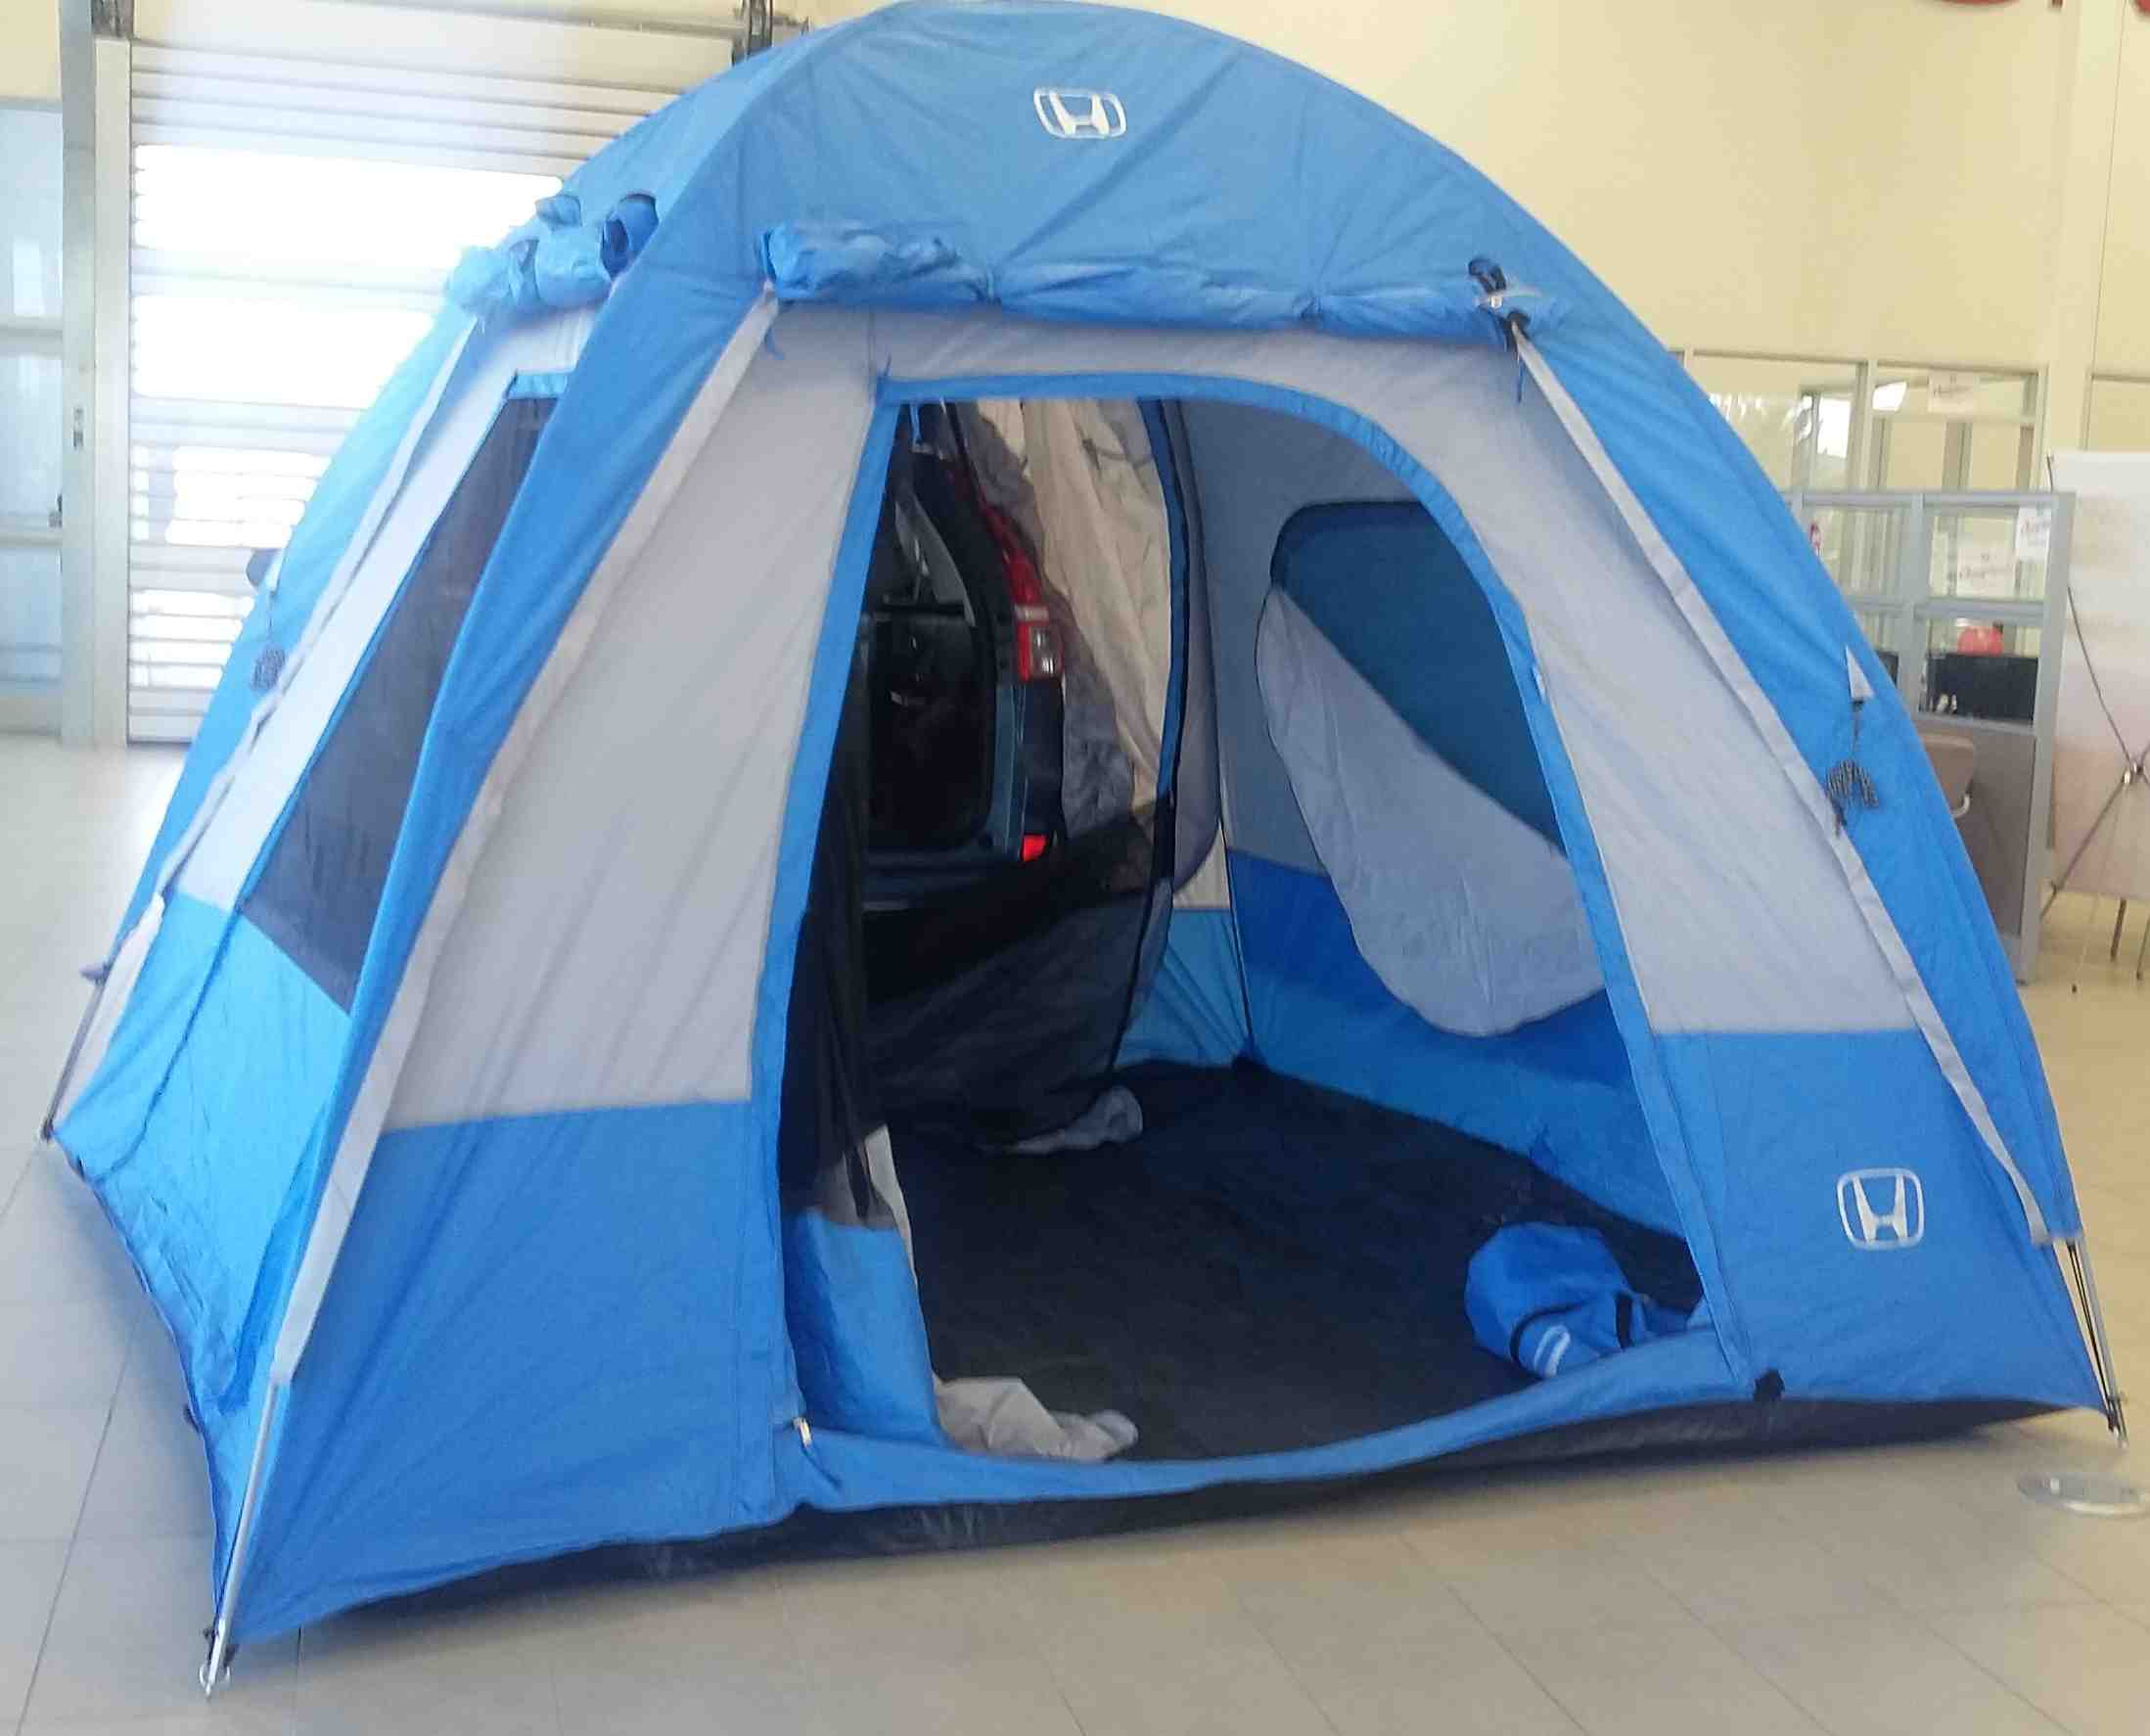 If you would like to see the 2016 CR-Vu0027s tent accessory come and visit the Dow Honda showroom! & Showroom Showoff: Tent Edition - Dow Honda